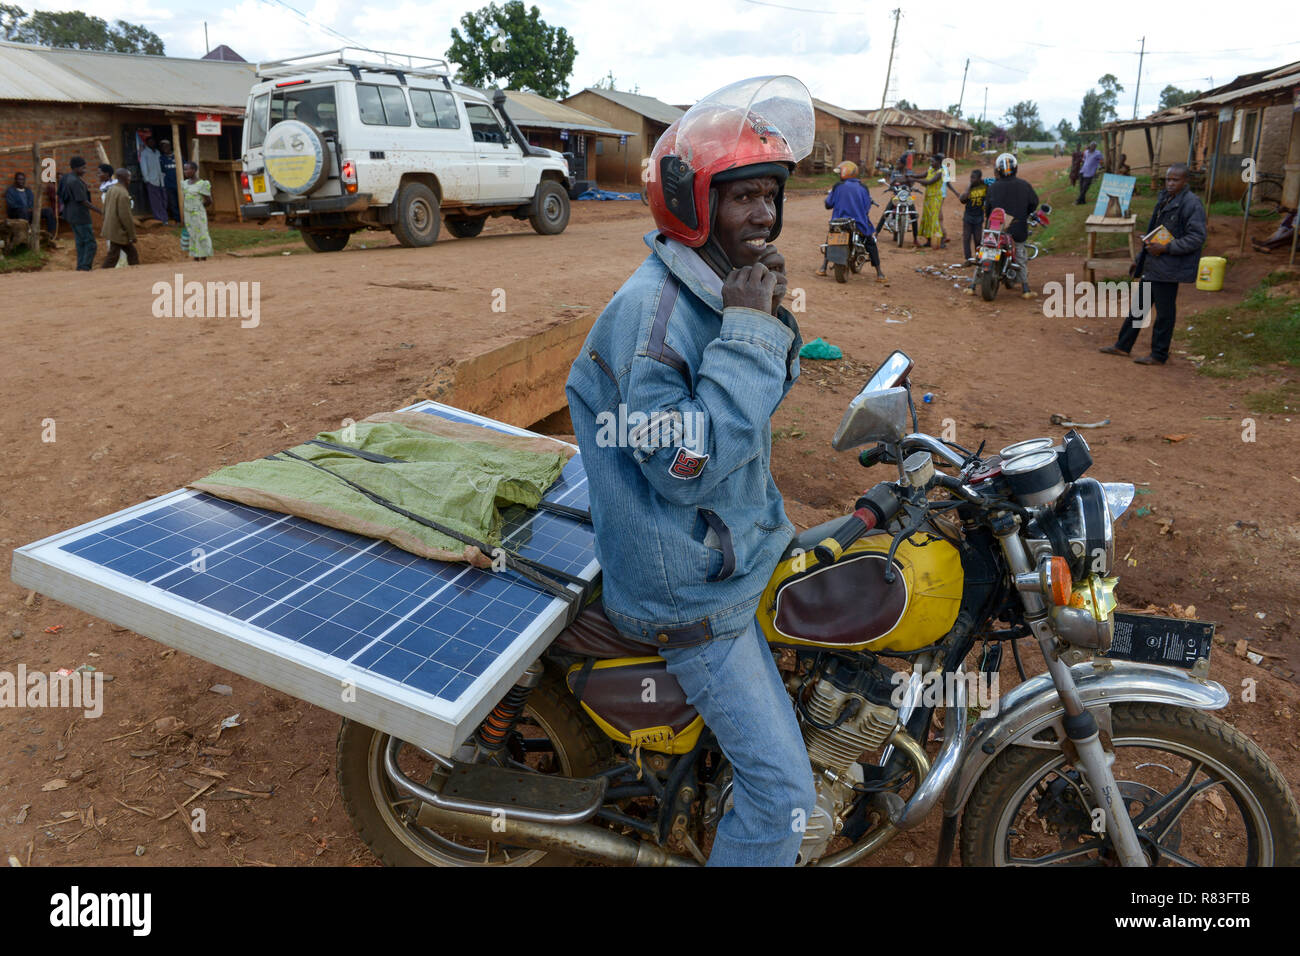 TANZANIA, Tarime, transport of PV solar panel by motorbike / Transport eines Solar Panels mit dem Motorrad - Stock Image